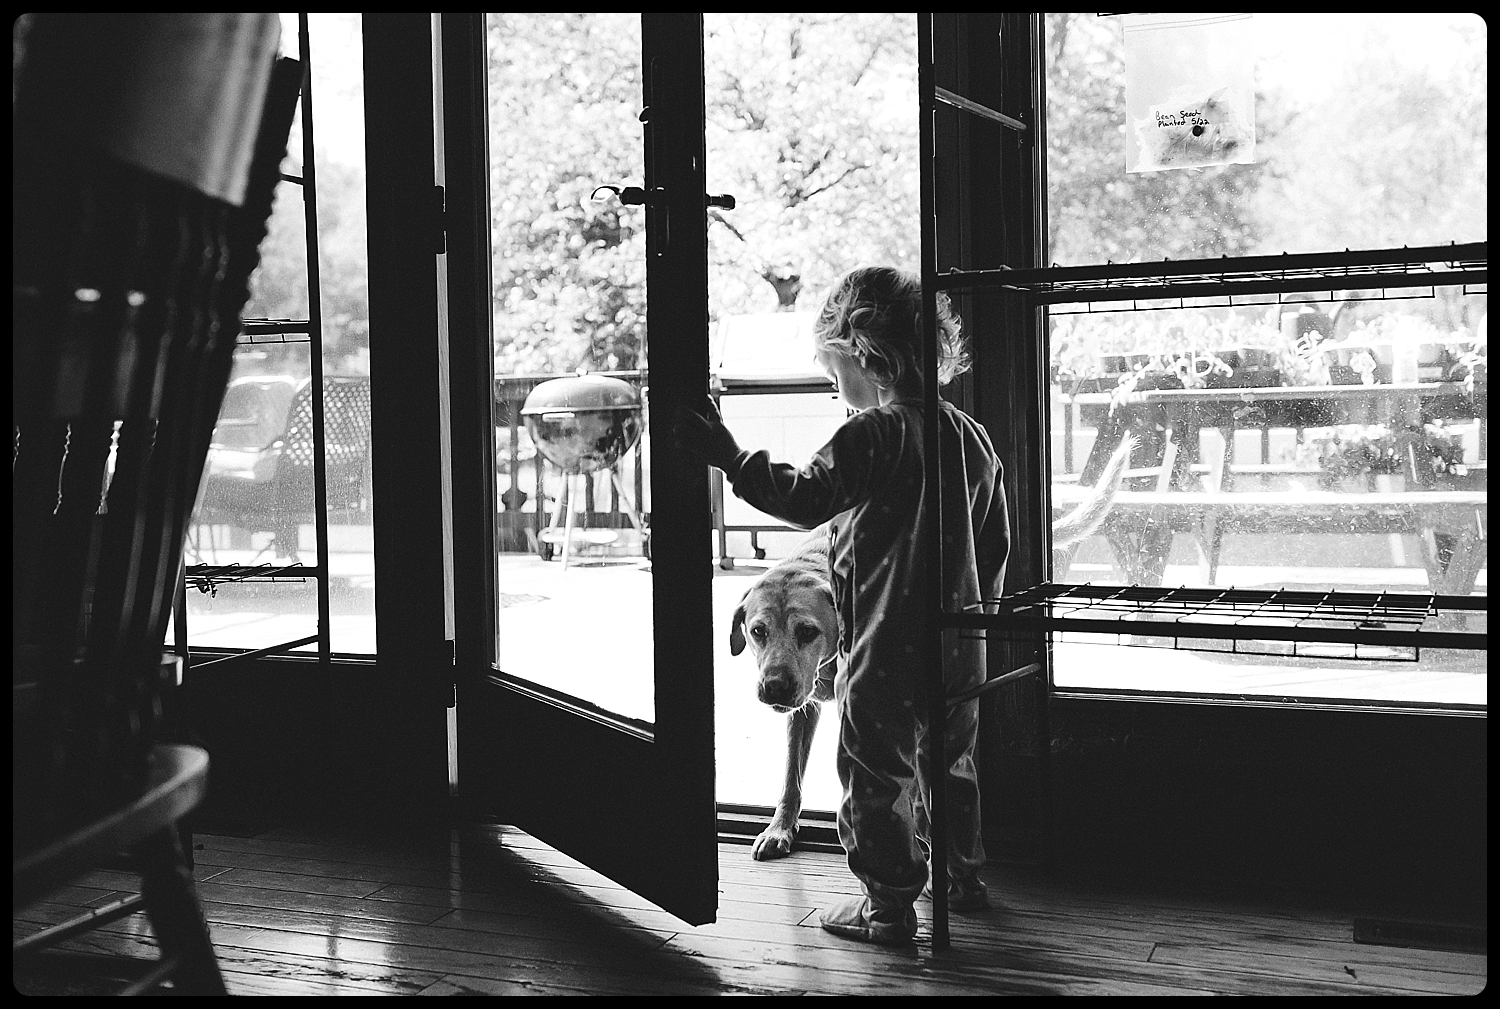 Little girl letting dog inside the home.